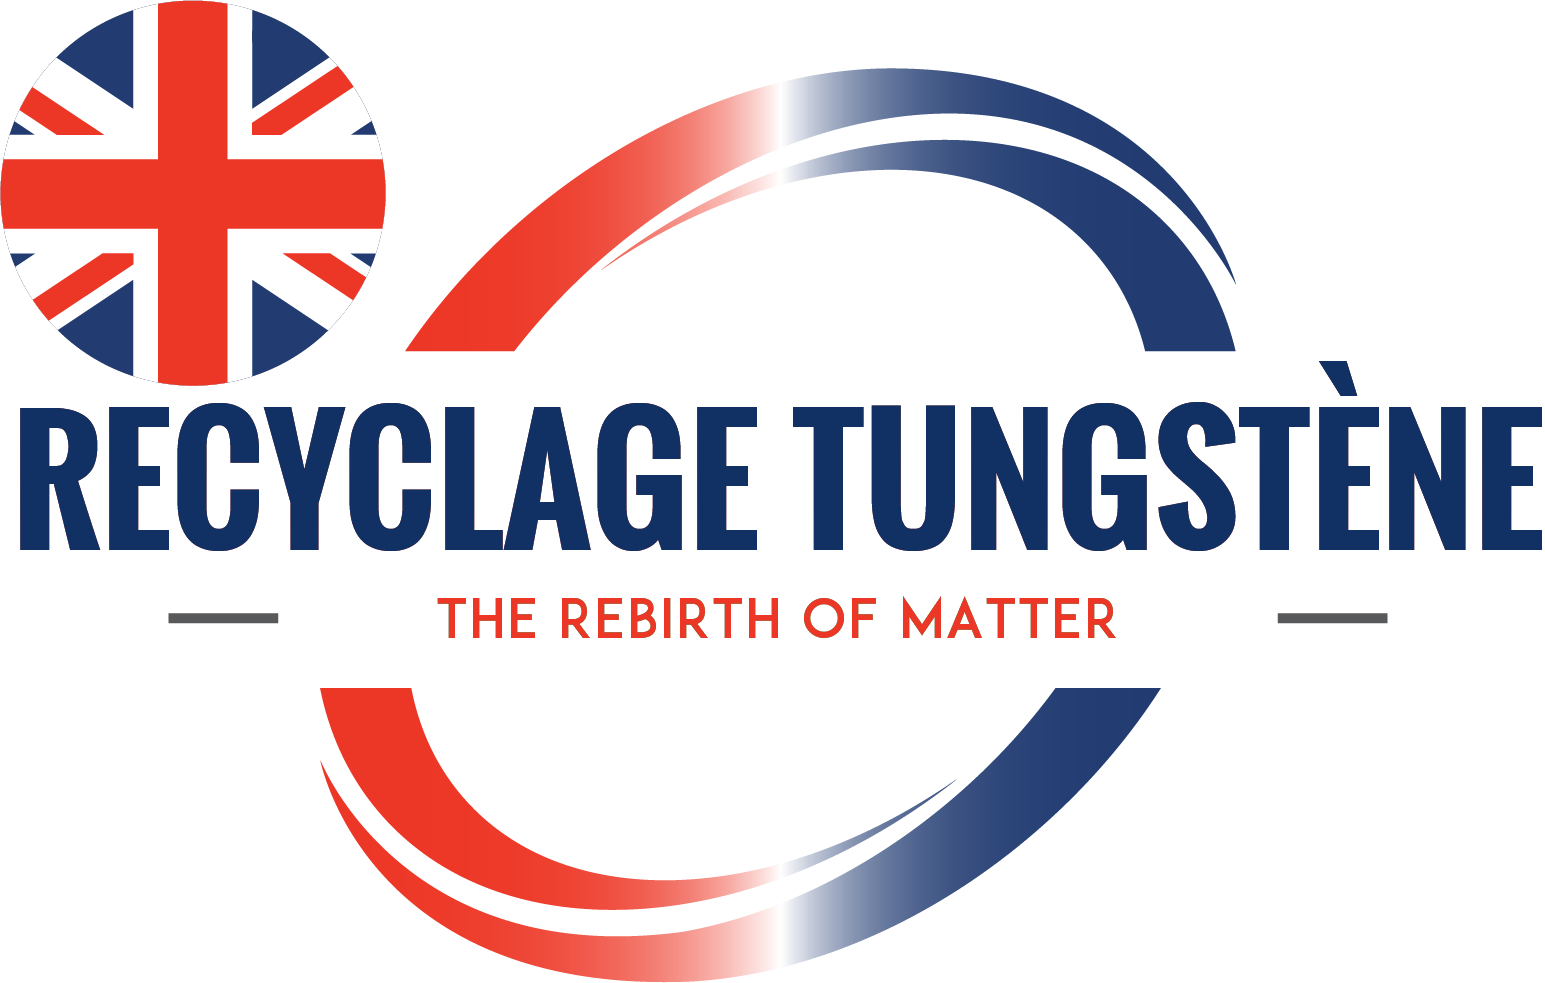 TUNGSTEN RECYCLING